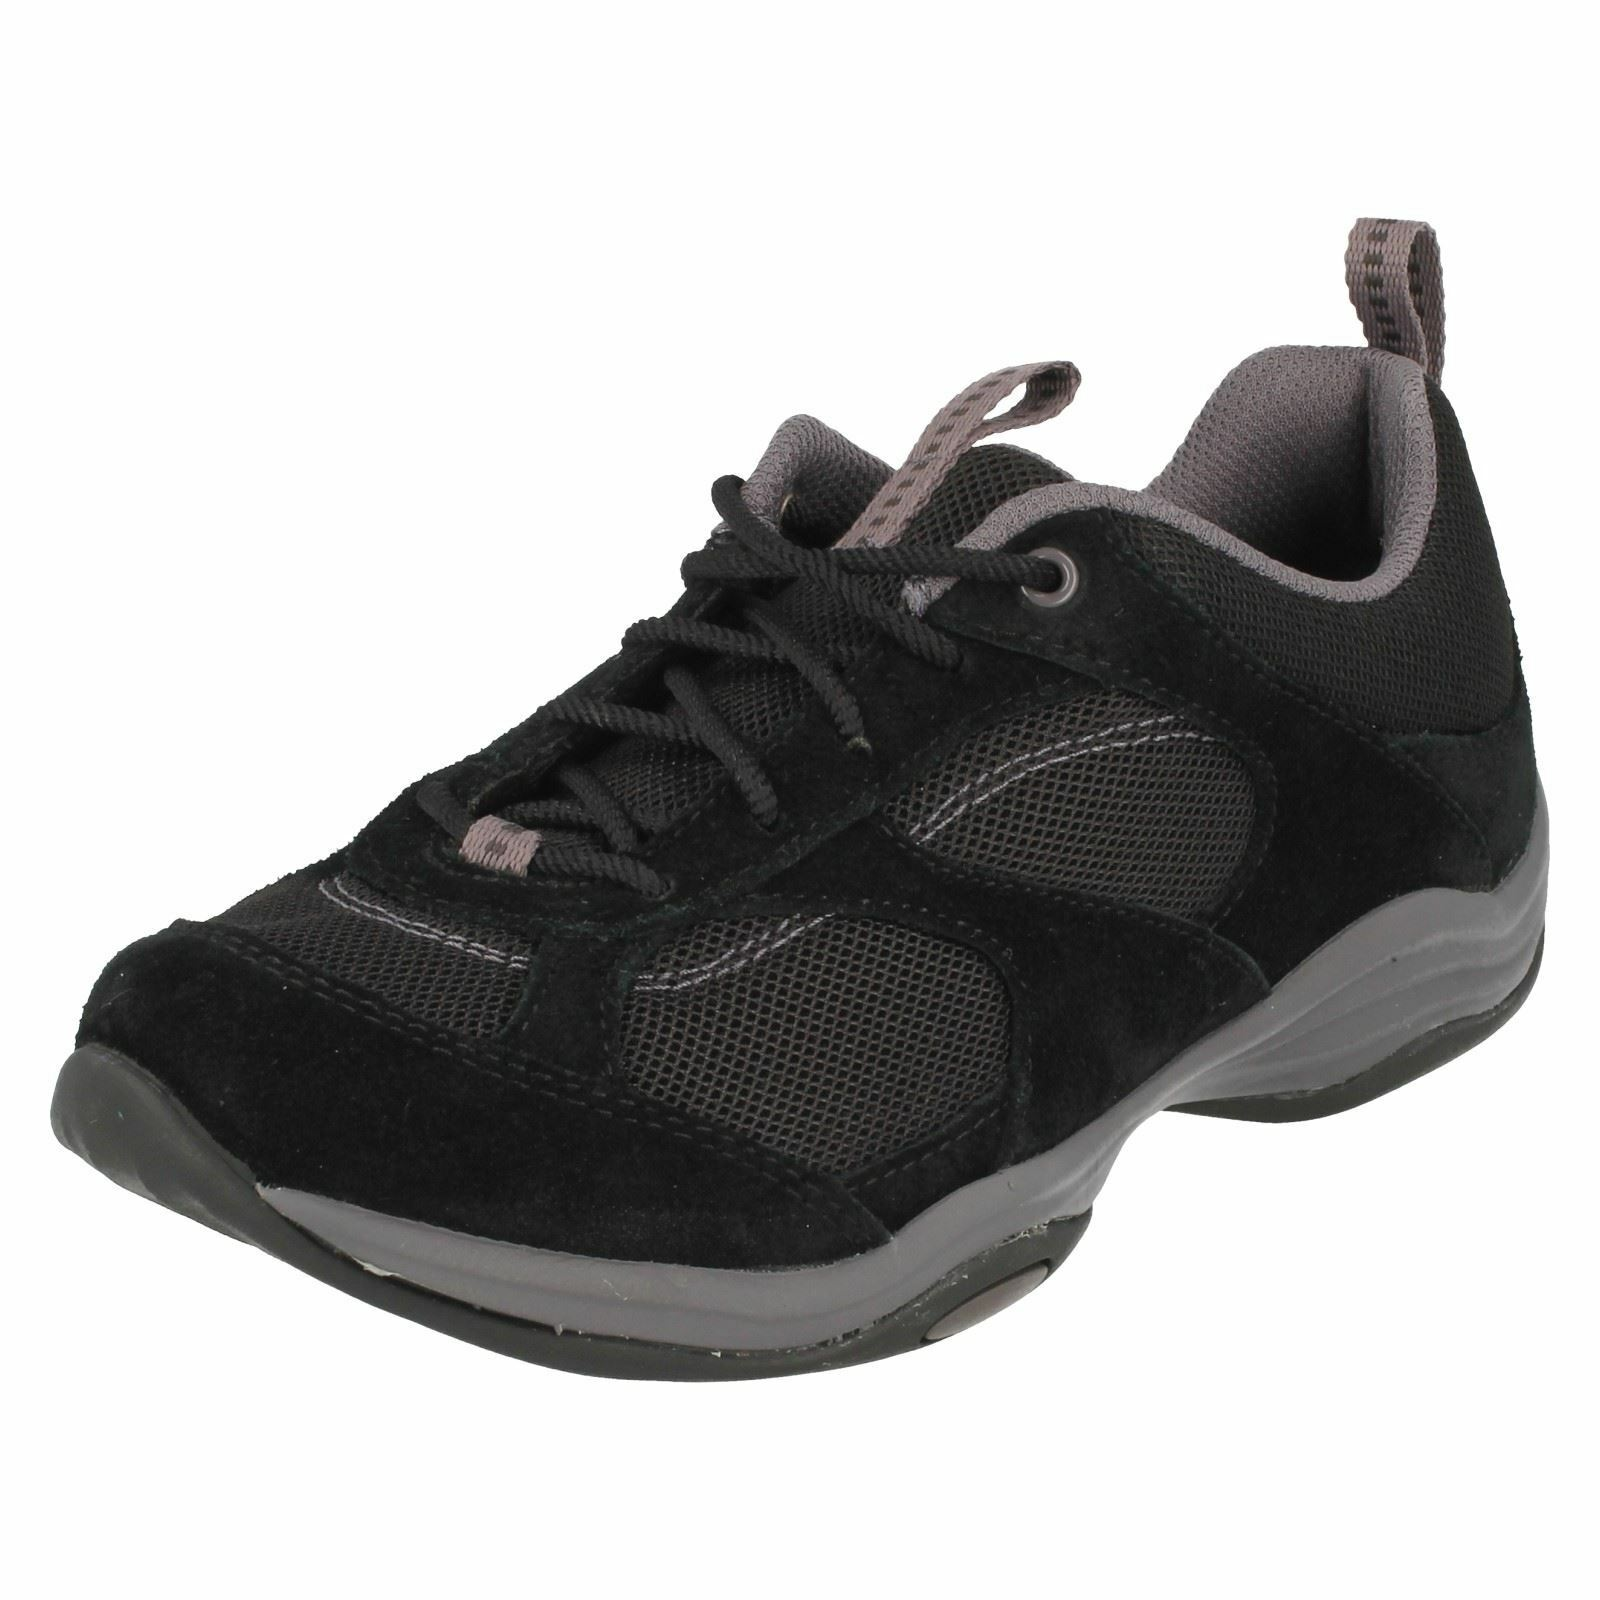 LADIES CLARKS schwarz SUEDE LACE UP EVERYDAY EVERYDAY EVERYDAY WALKING TRAINERS schuhe INWALK ISH AIR  | Düsseldorf Eröffnung